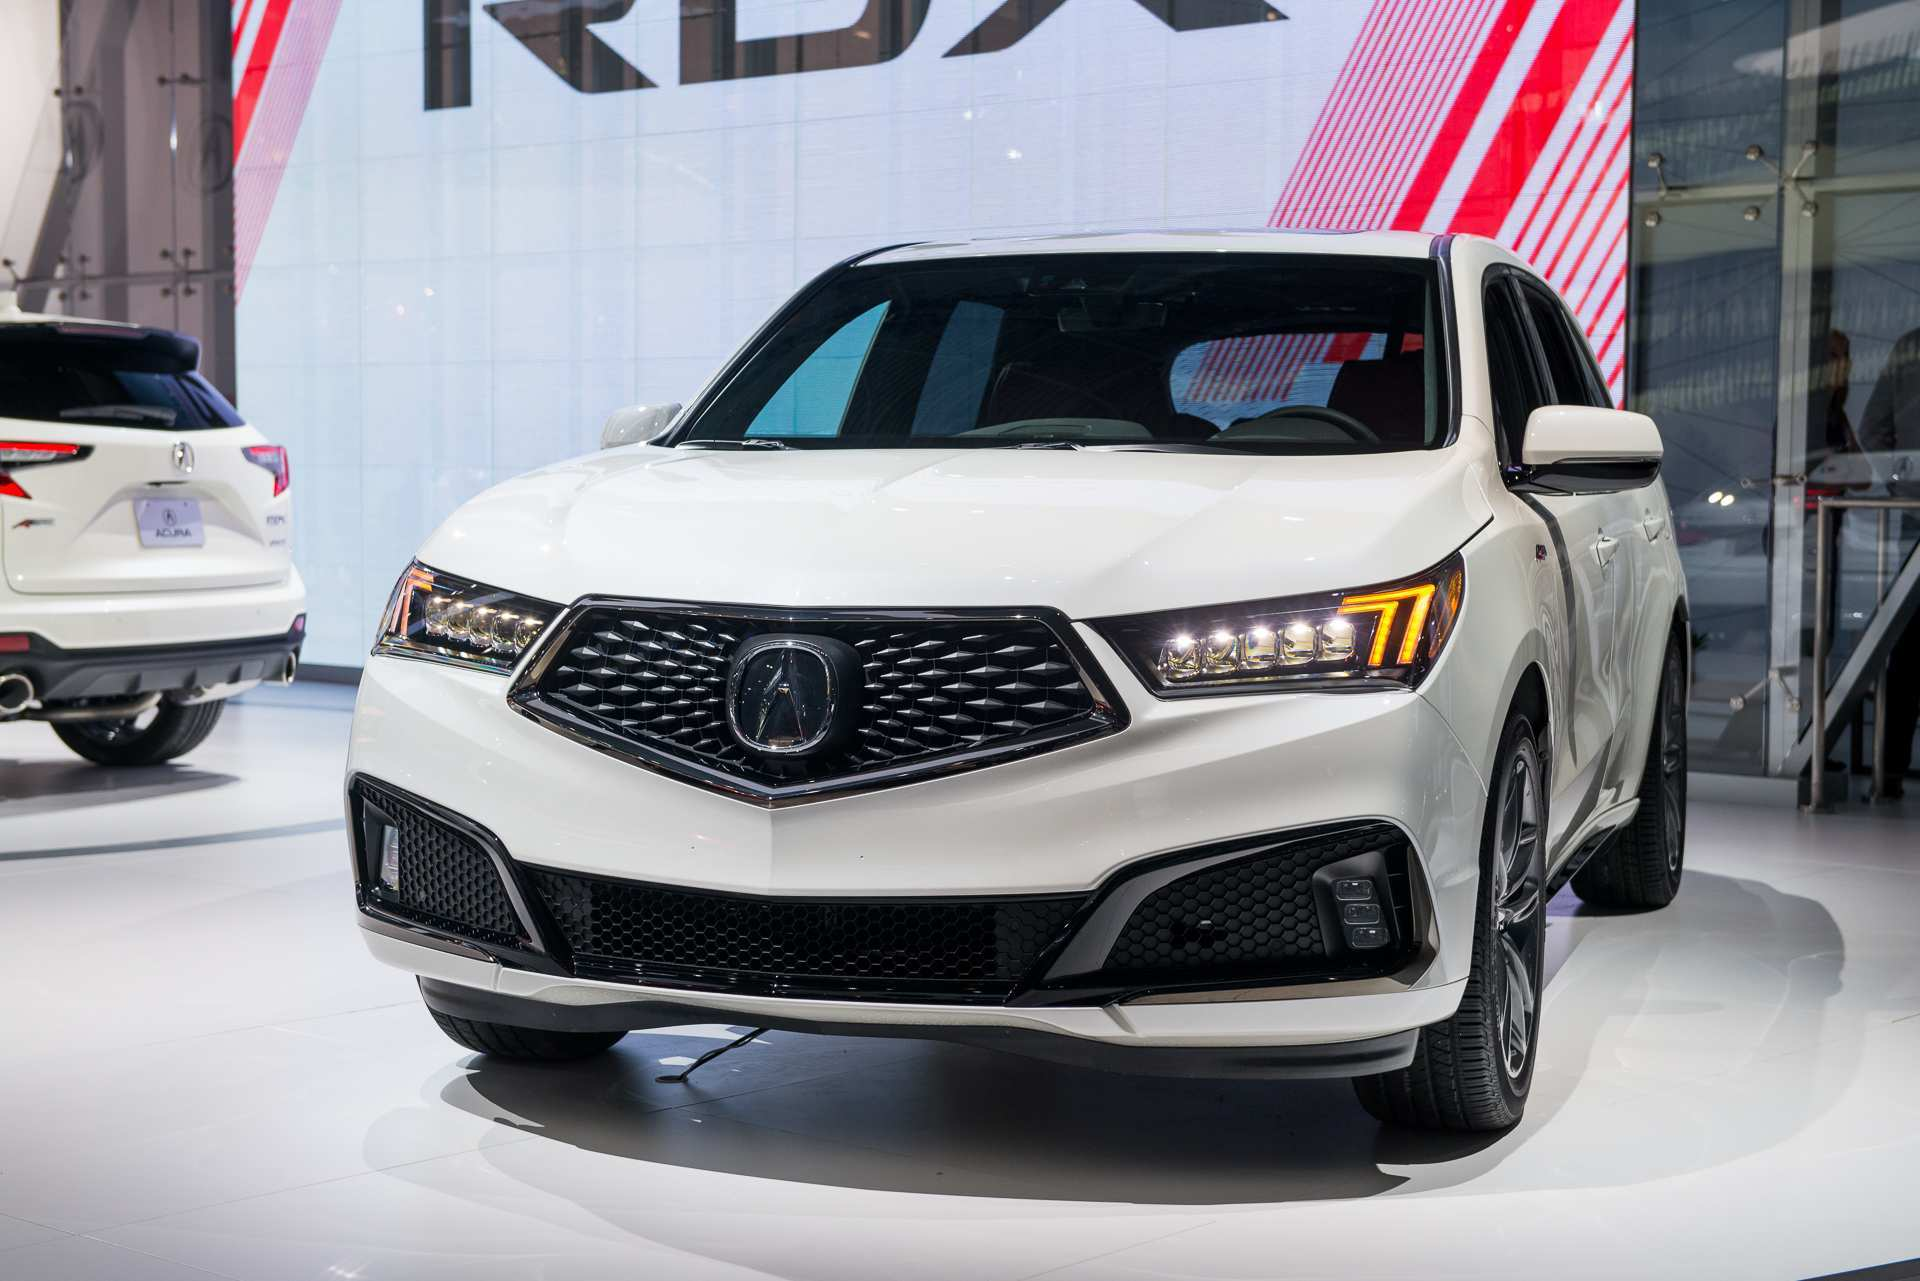 69 All New 2019 Acura 2019 Review And Release Date